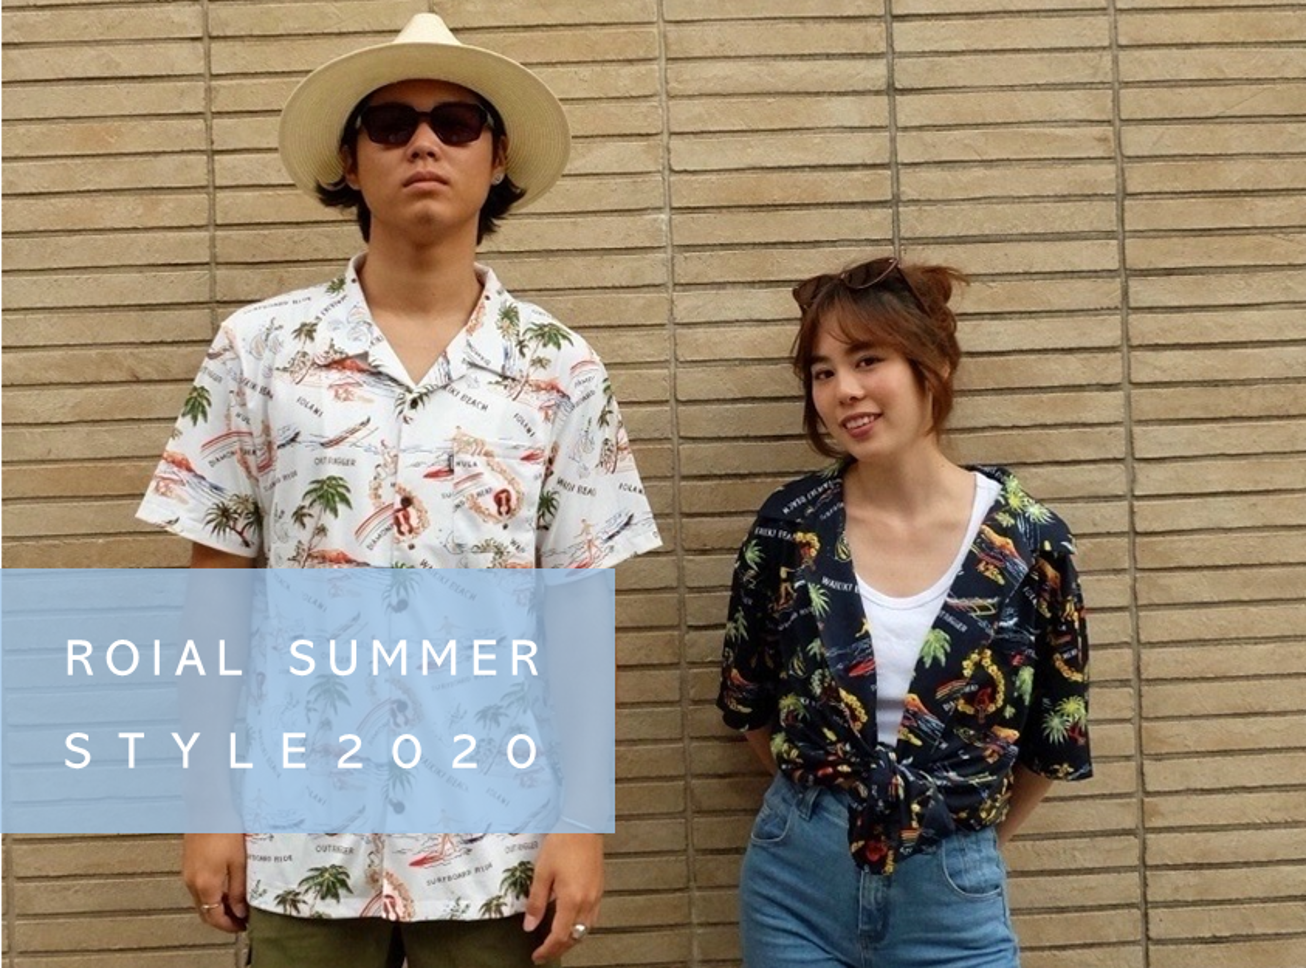 ROIAL SUMMER STYLE 2020